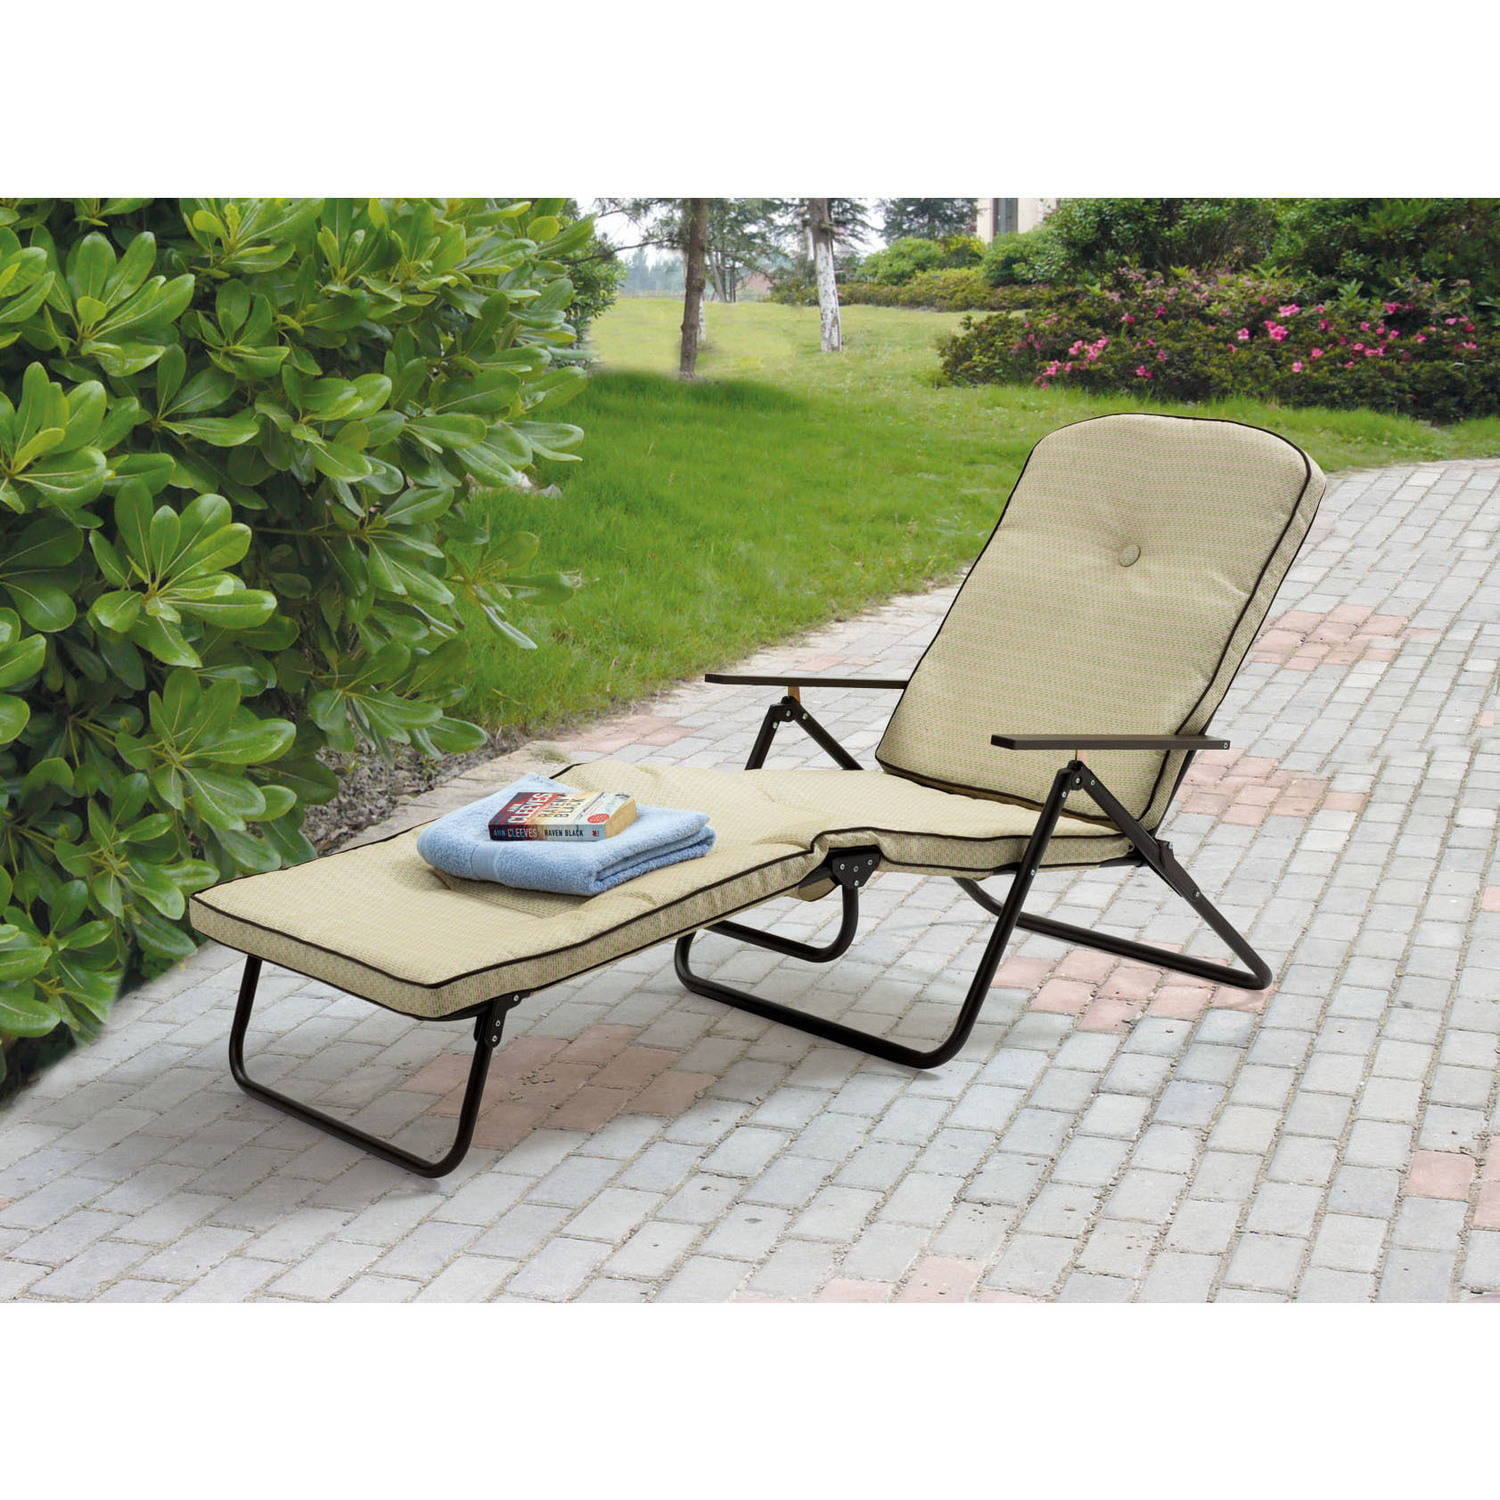 Attractive Mainstays Sand Dune Outdoor Padded Folding Chaise Lounge, Tan   Walmart.com